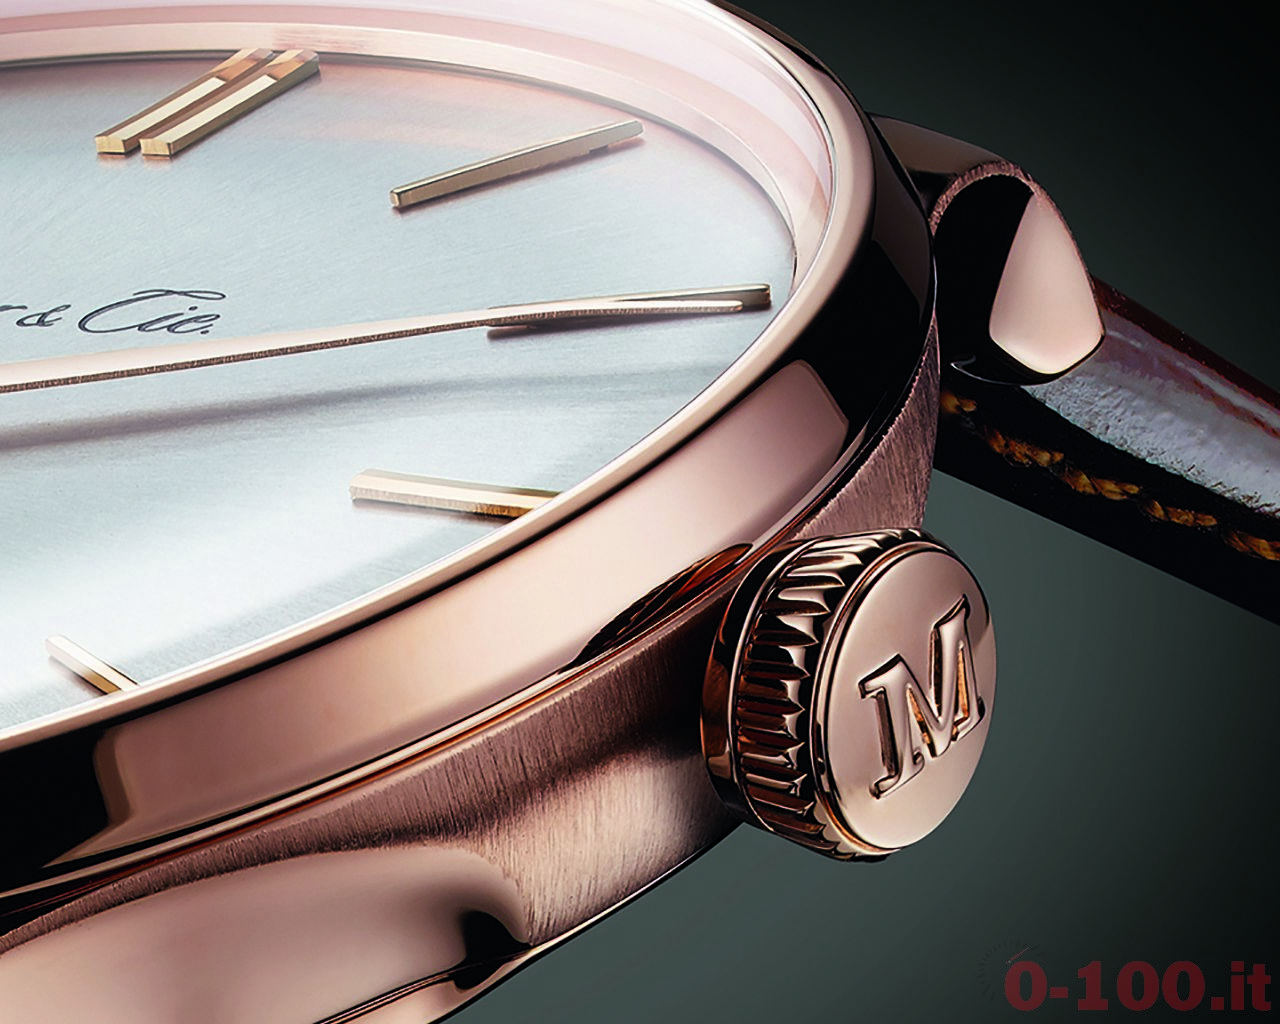 Baselworld-2014-H. Moser & Cie Venturer Small Seconds _0-10018